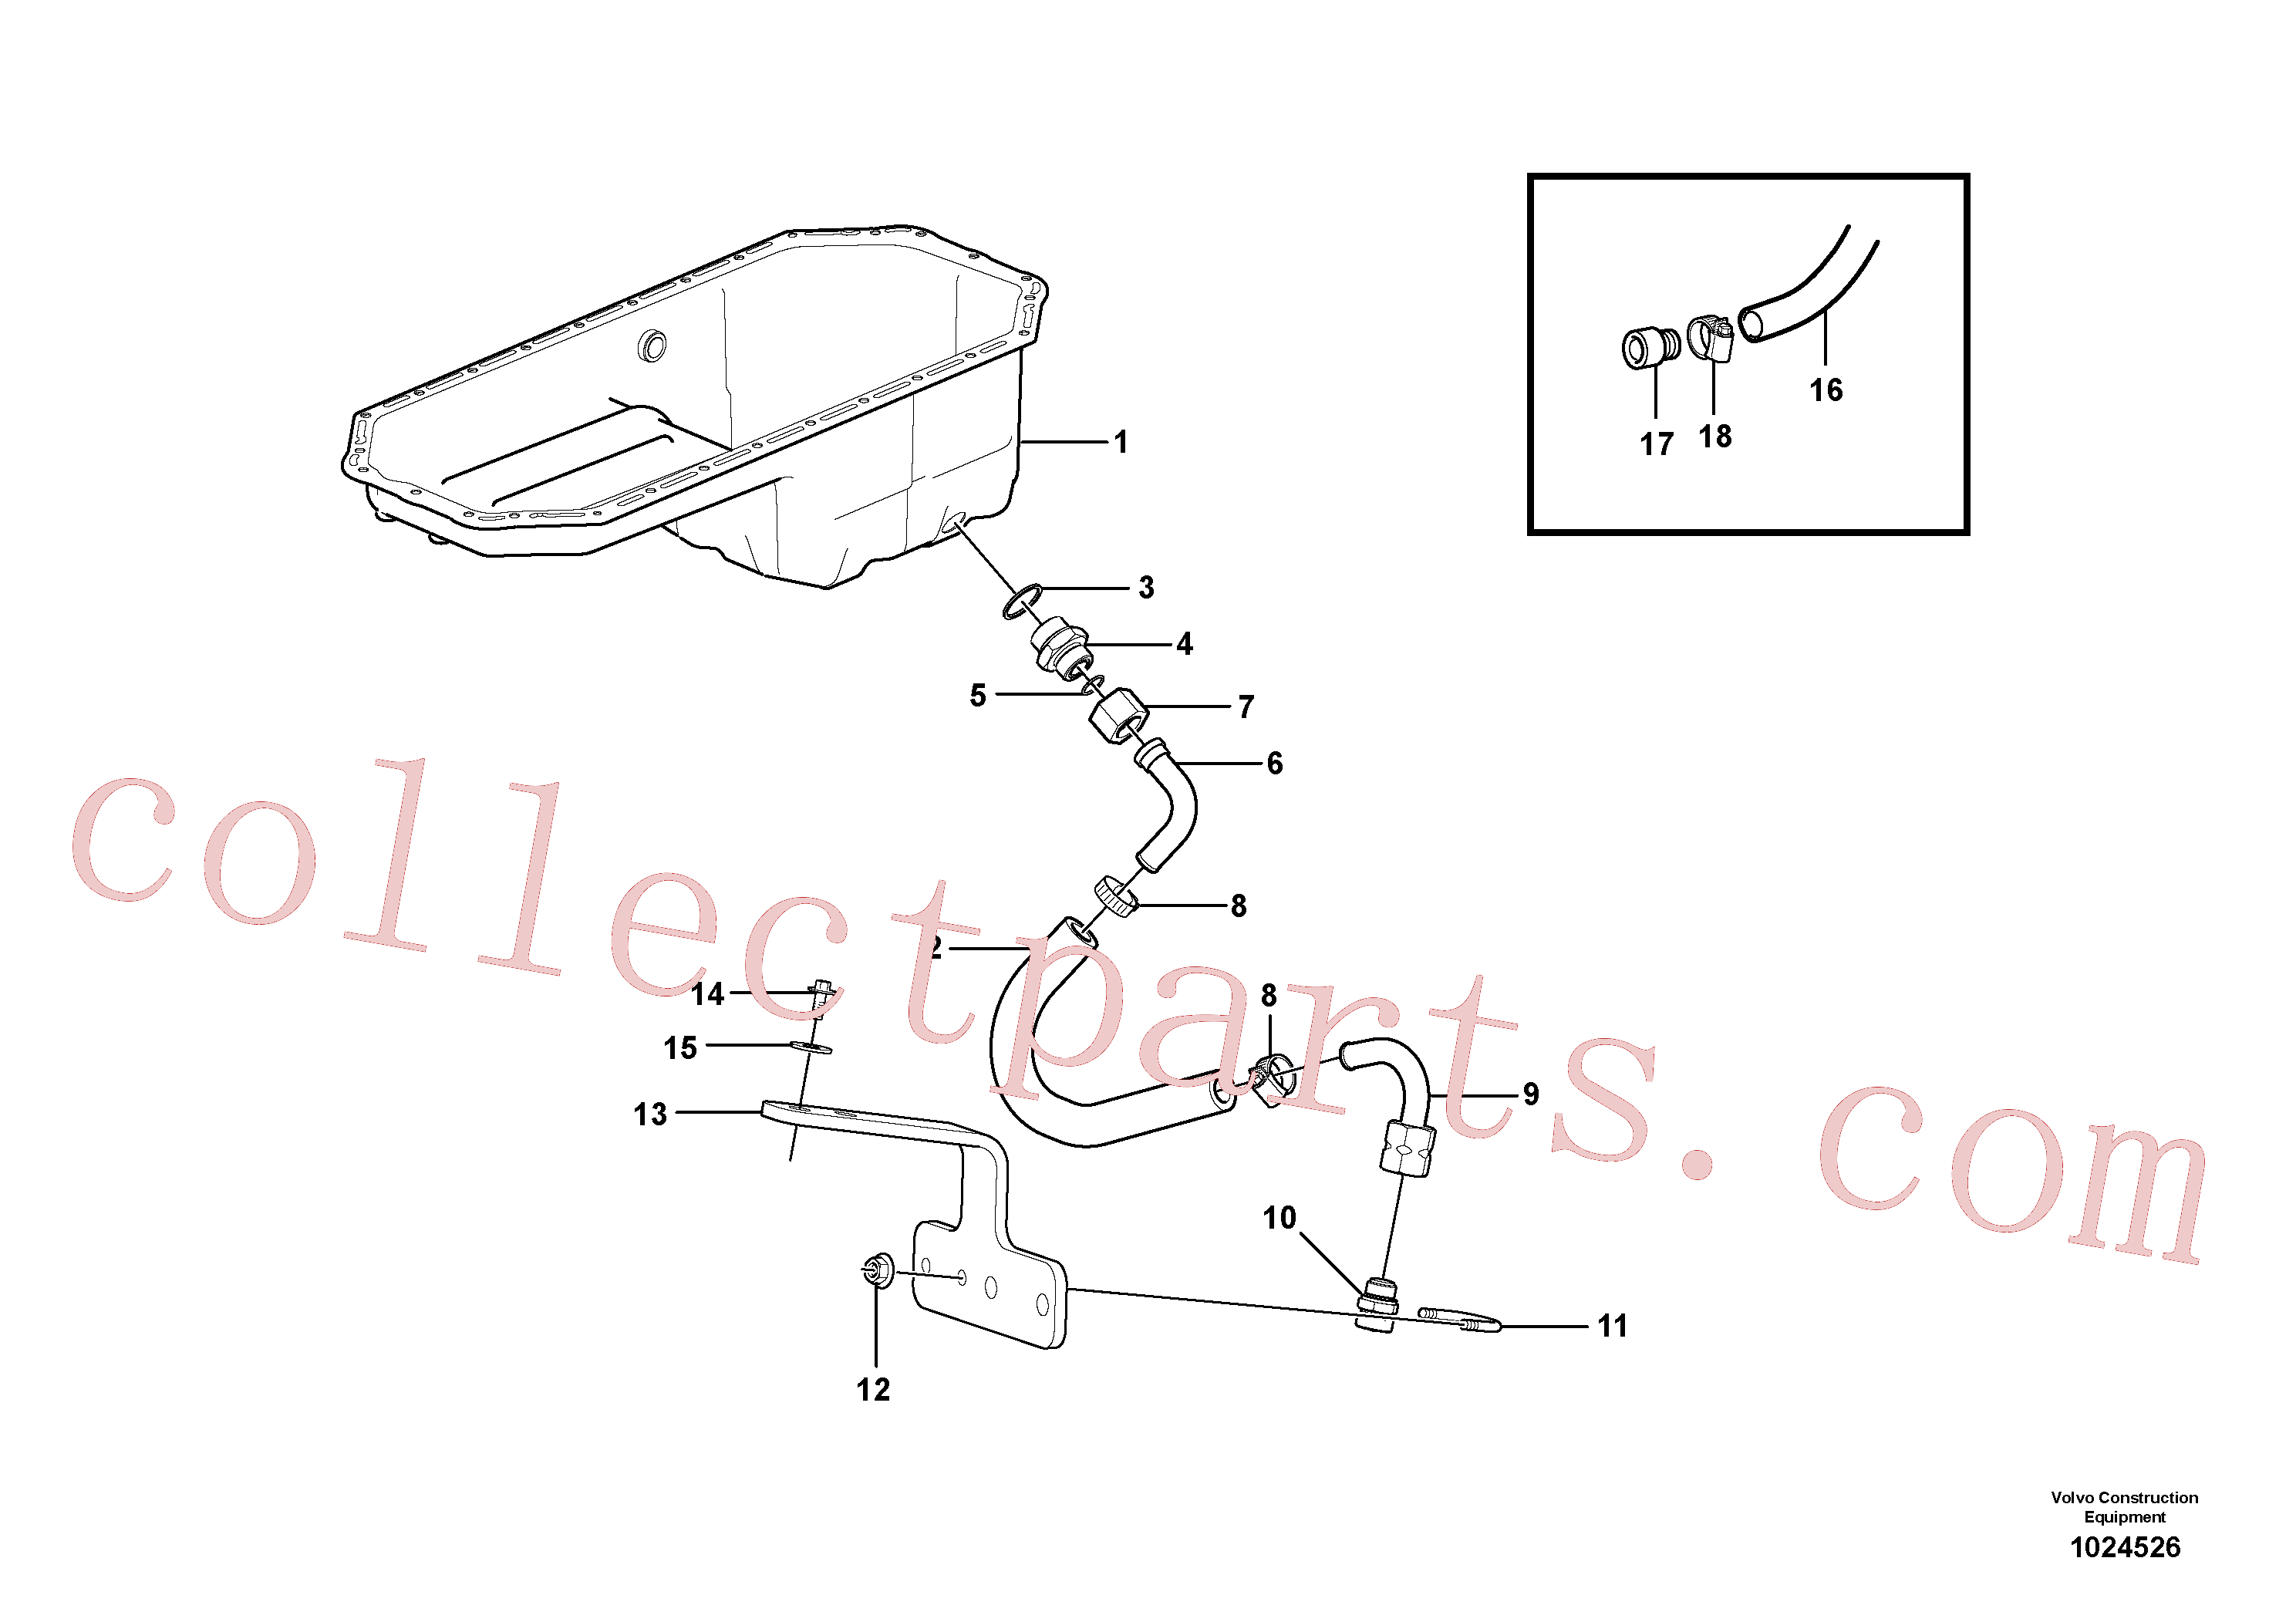 VOE192358 for Volvo Draining of oil sump(1024526 assembly)